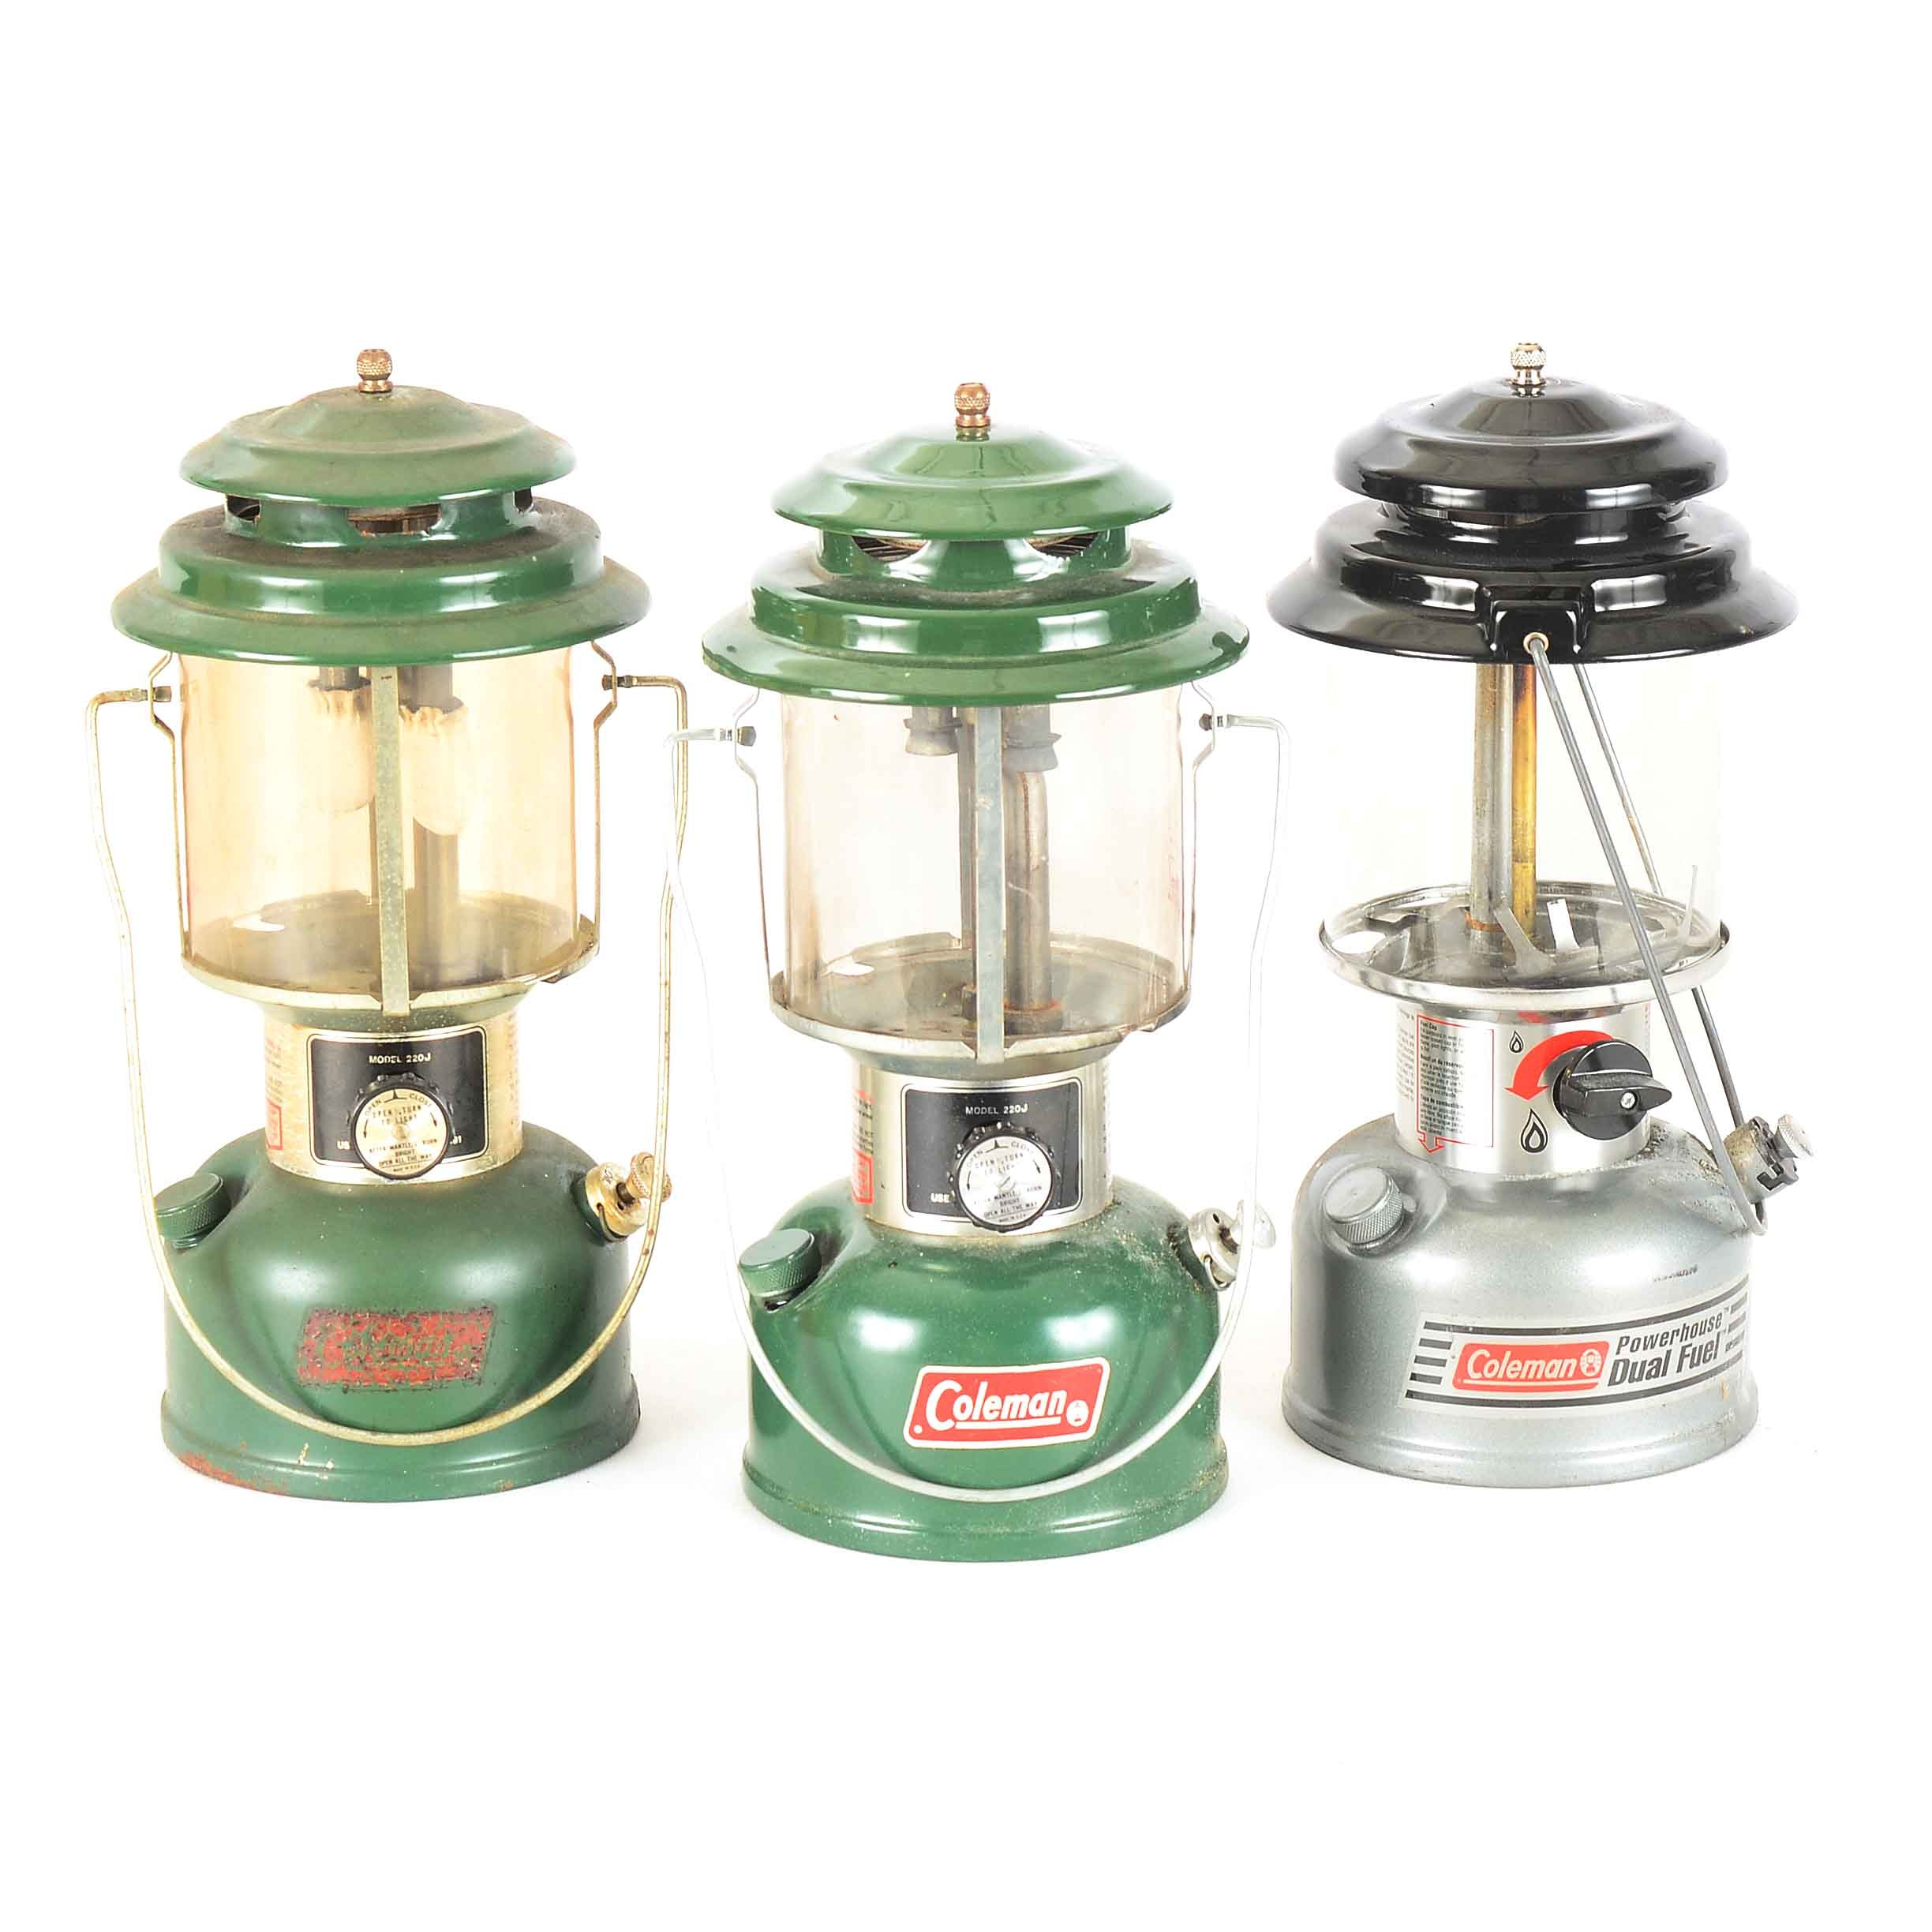 Coleman Oil Camp Lanterns With Plastic Cases